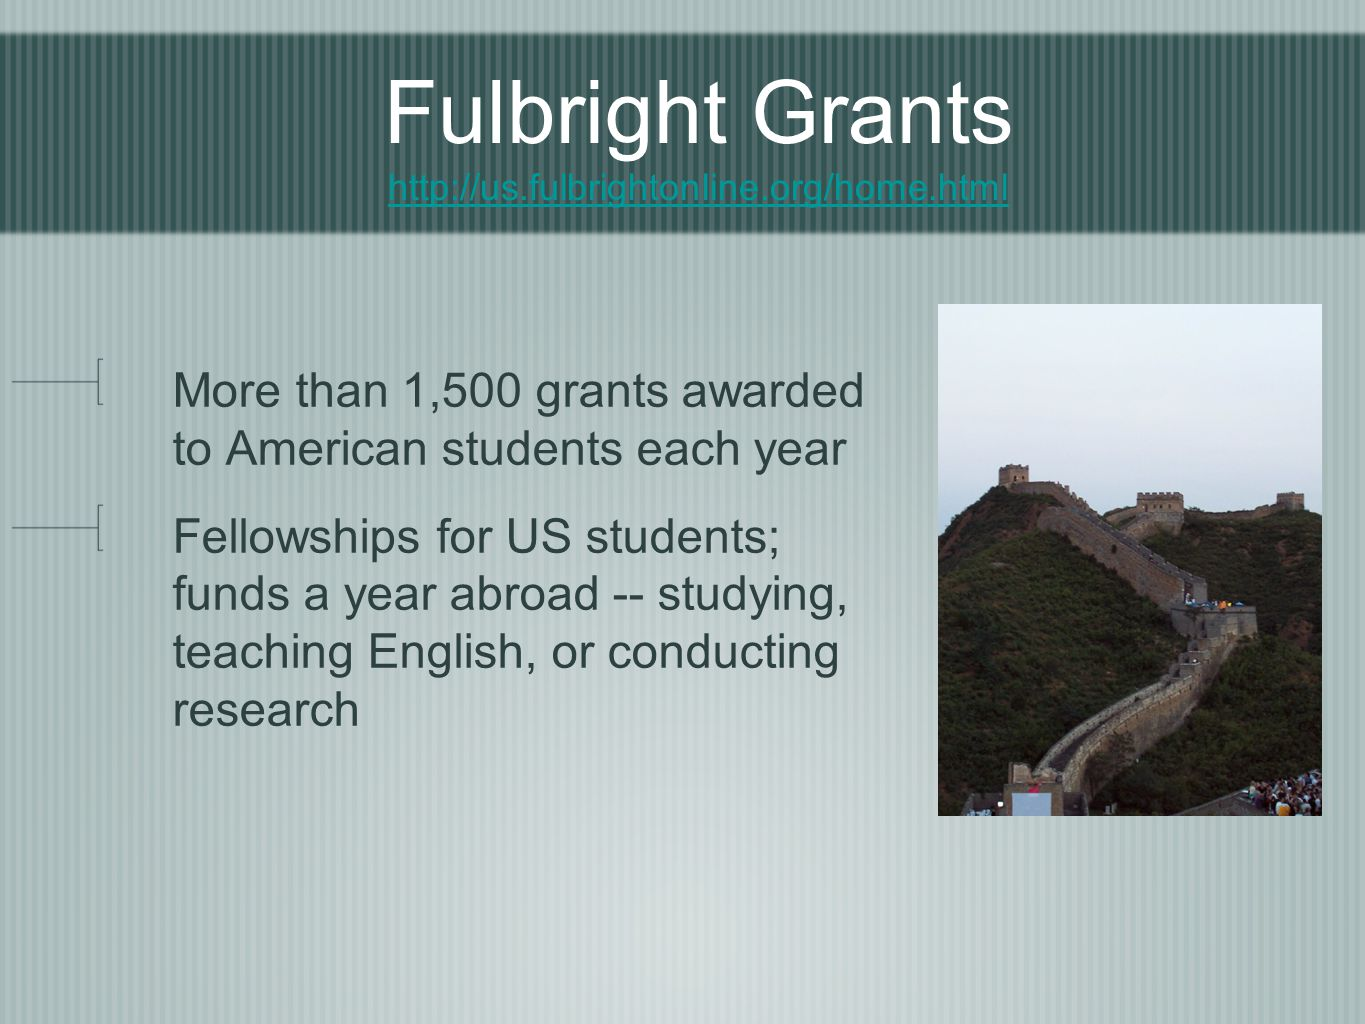 Fulbright Grants http://us.fulbrightonline.org/home.html http://us.fulbrightonline.org/home.html More than 1,500 grants awarded to American students each year Fellowships for US students; funds a year abroad -- studying, teaching English, or conducting research